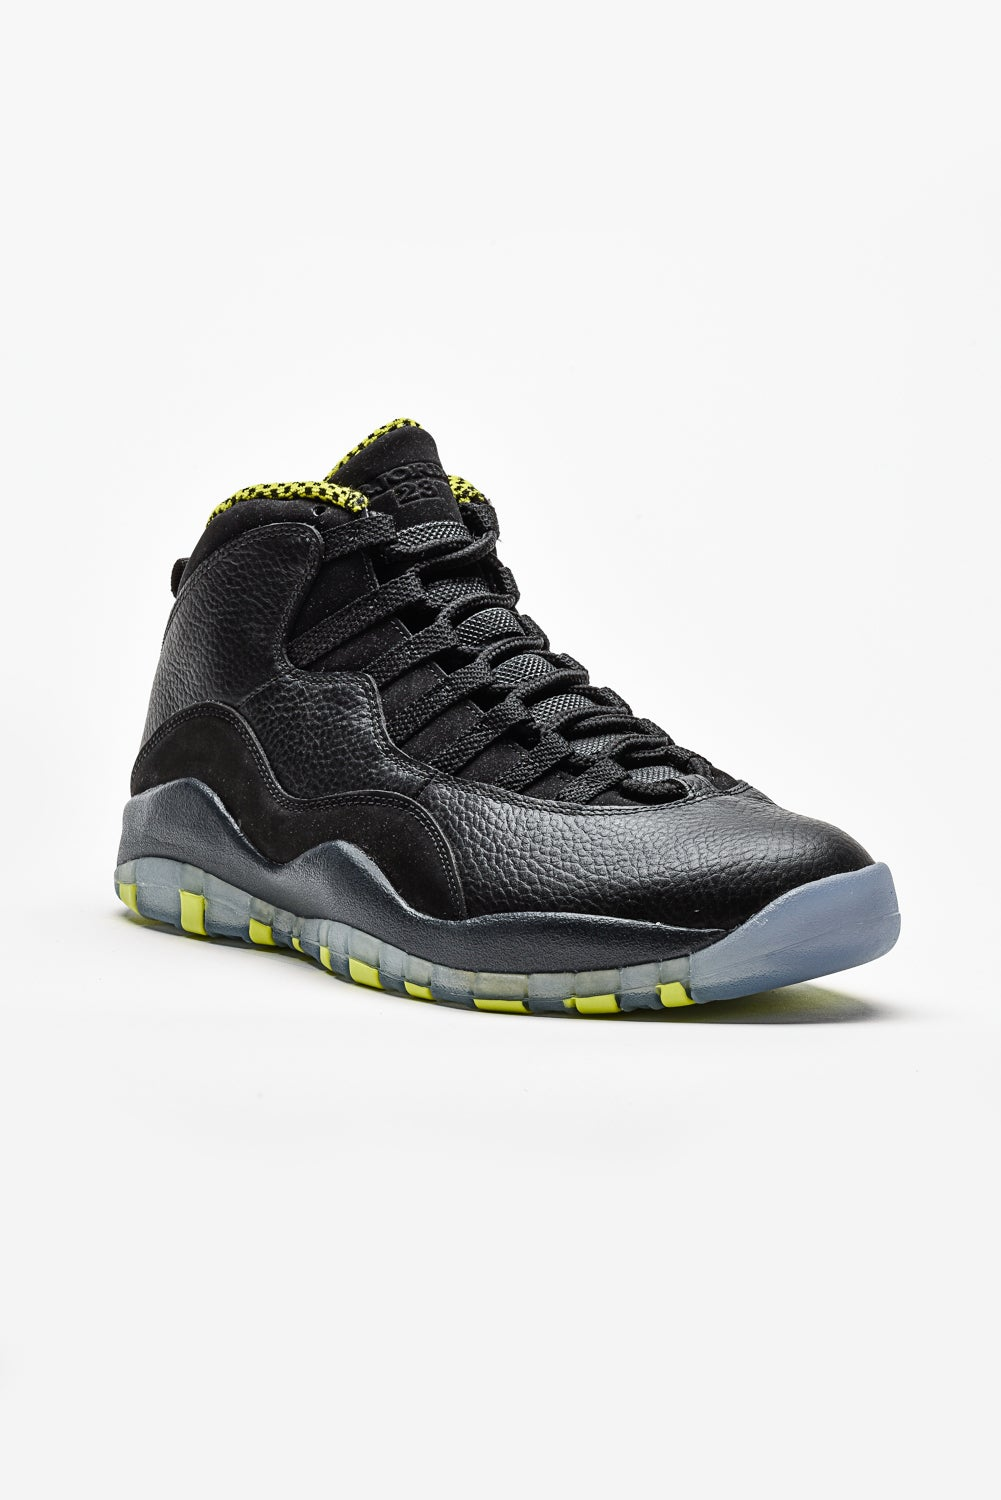 new concept 44da9 5c441 Image of Air Jordan 10 Retro - Venom